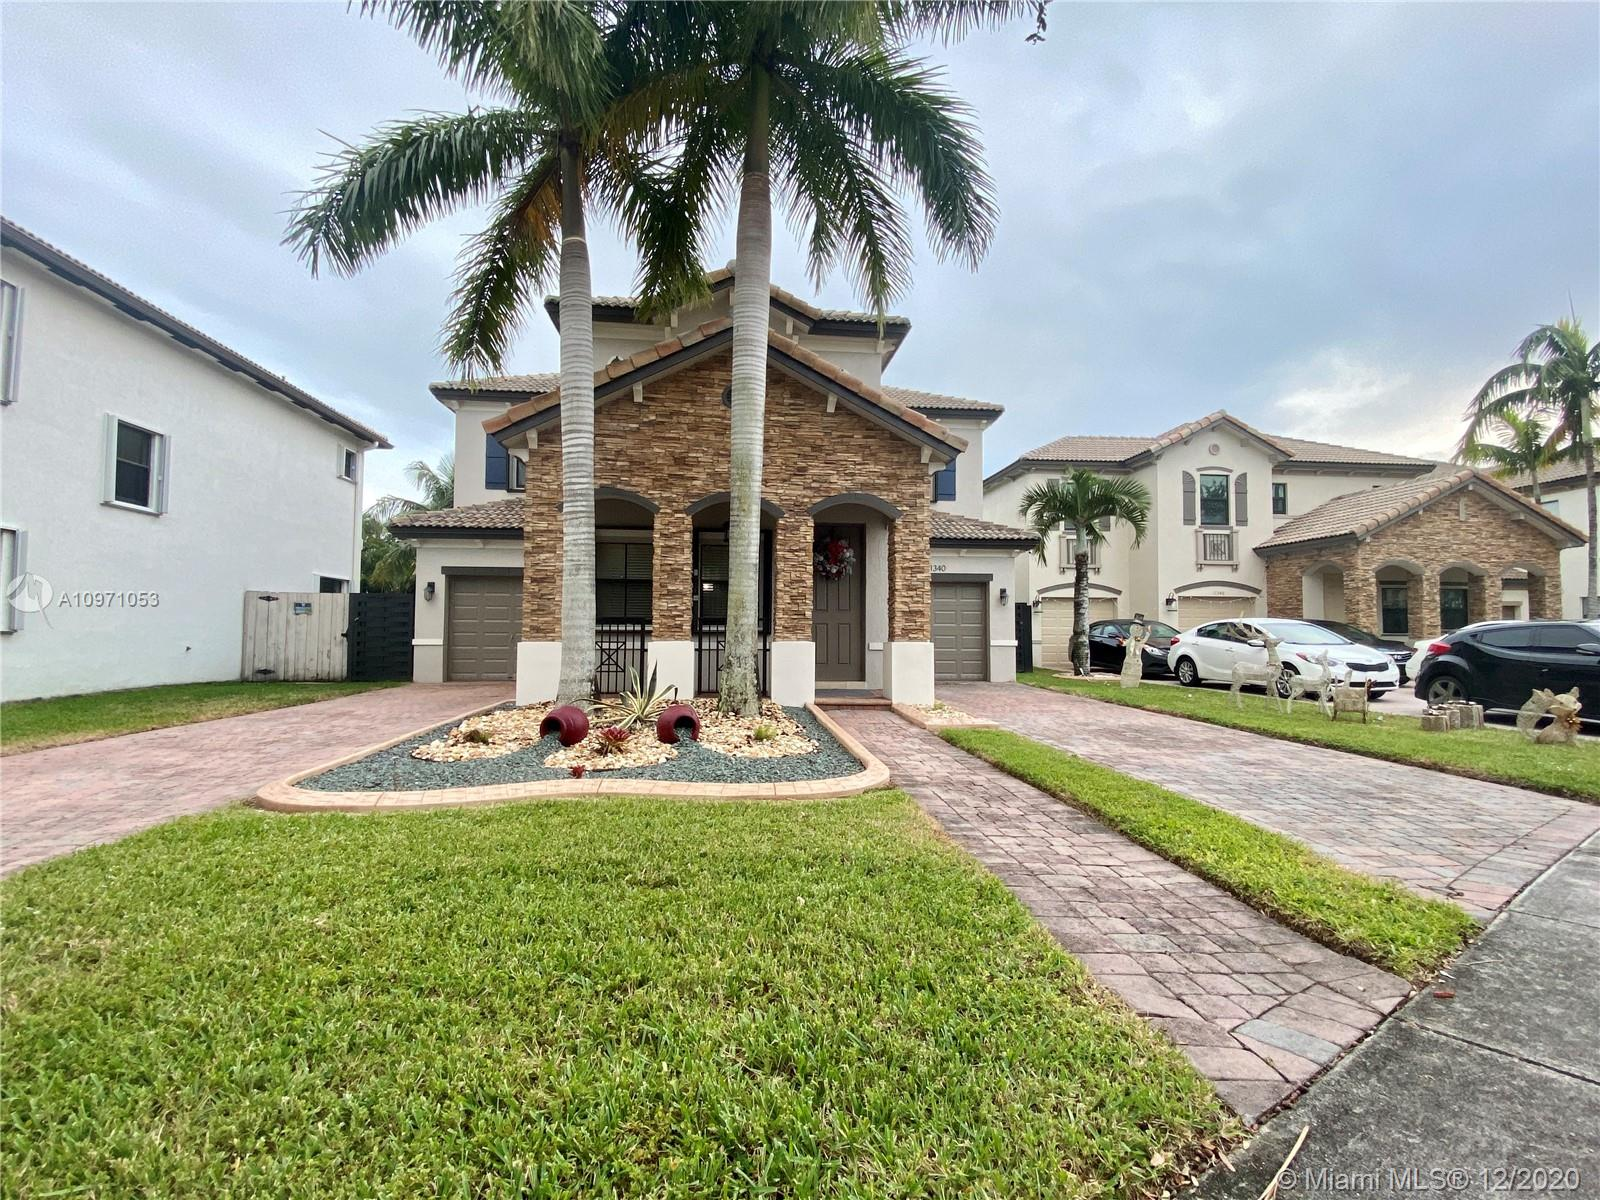 11340 SW 243rd Ter Property Photo - Homestead, FL real estate listing